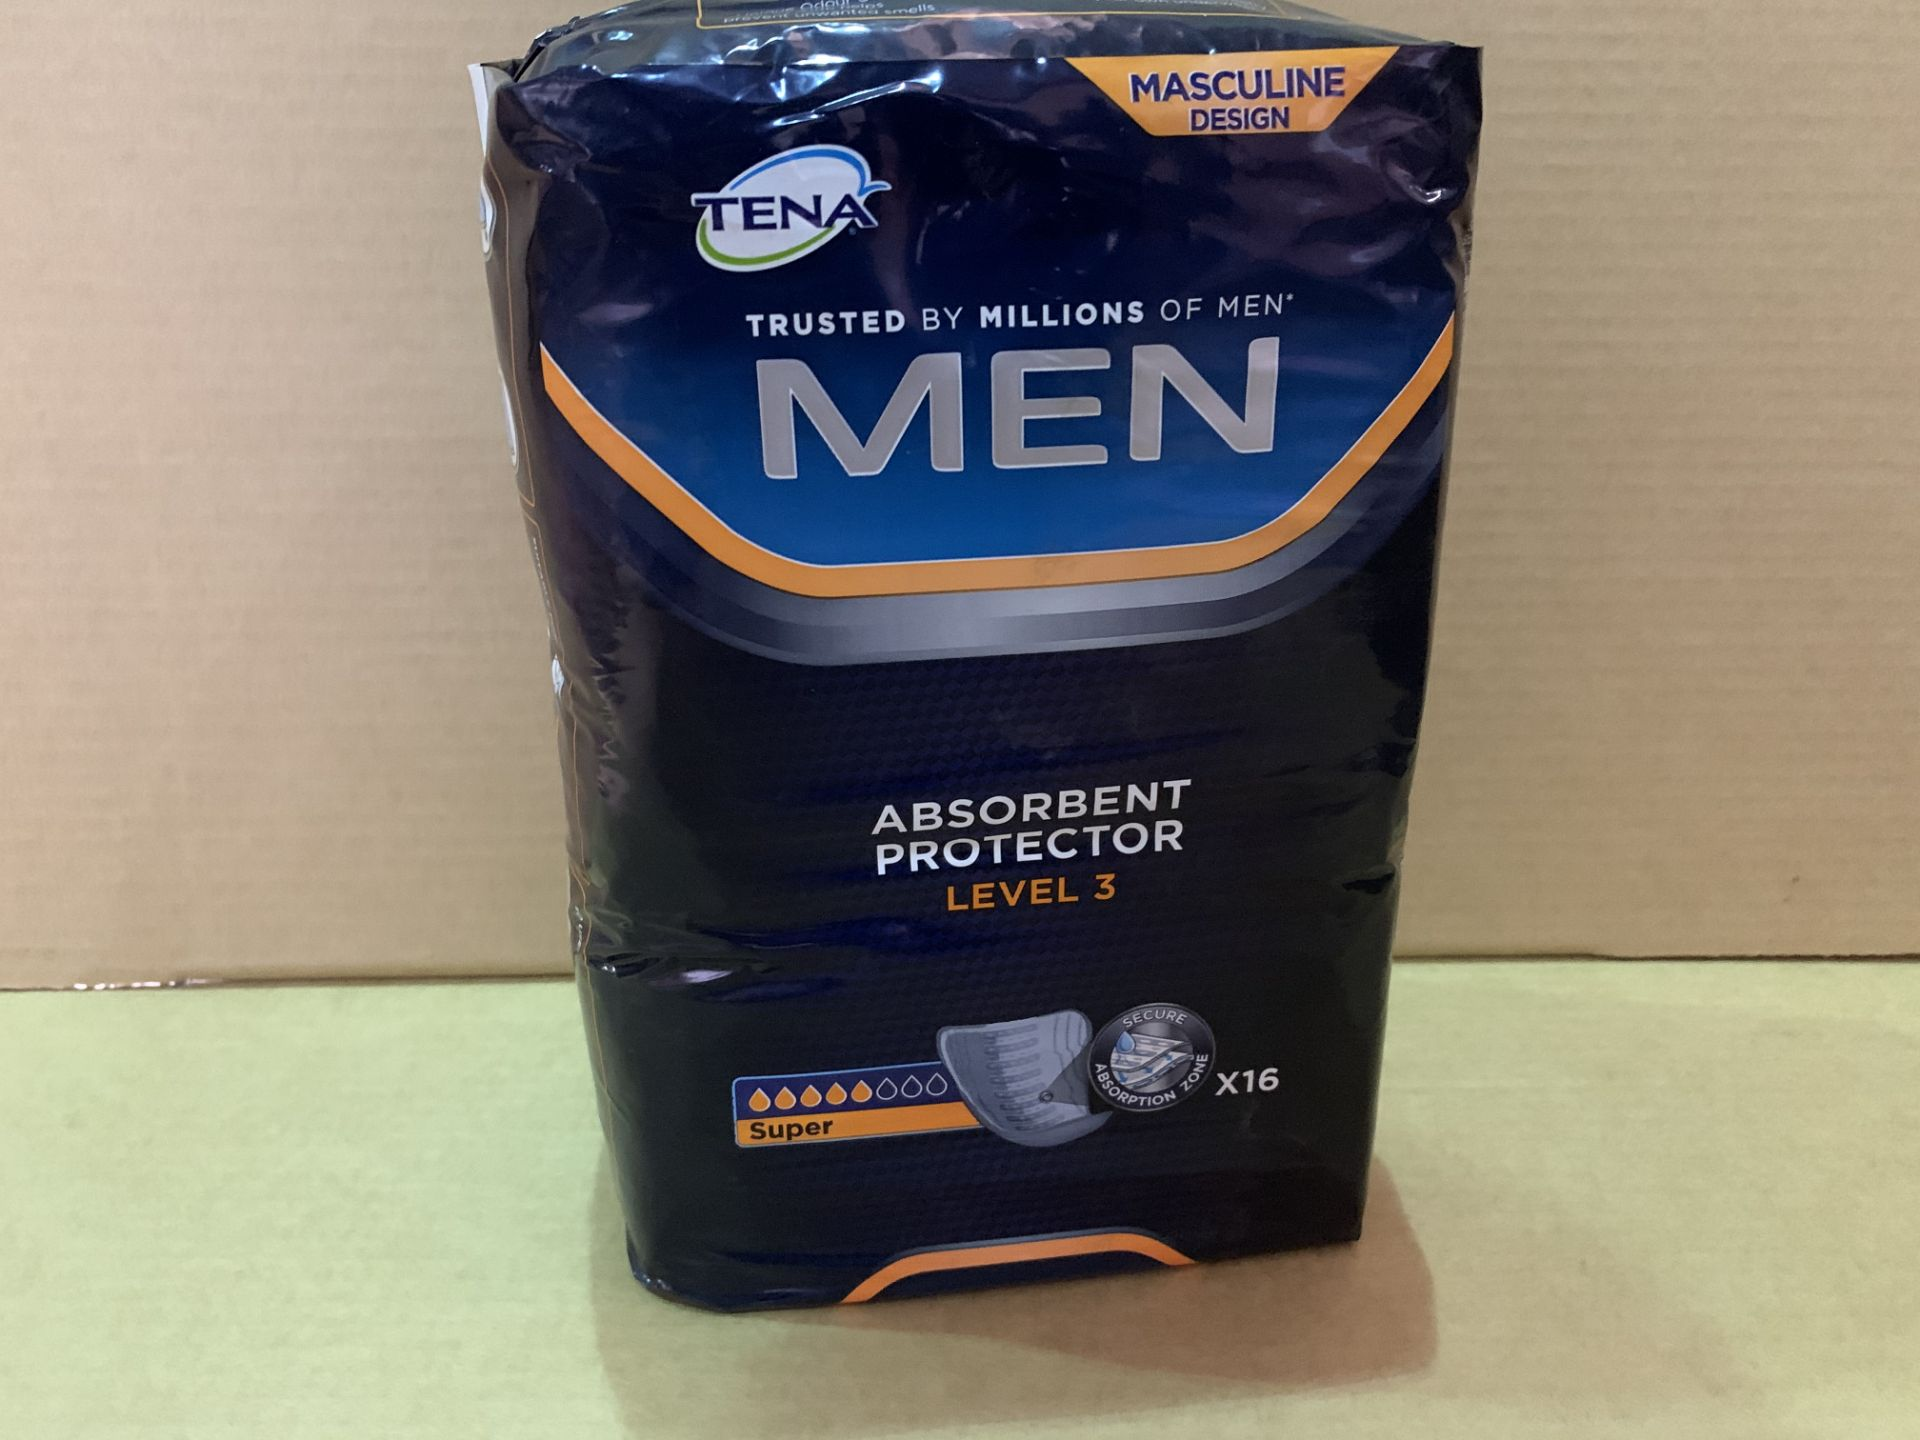 24 X BRAND NEW PACKS OF 16 TENA MEN ABSORBENT PROTECTOR LEVEL 3 PADS IN 4 BOXES